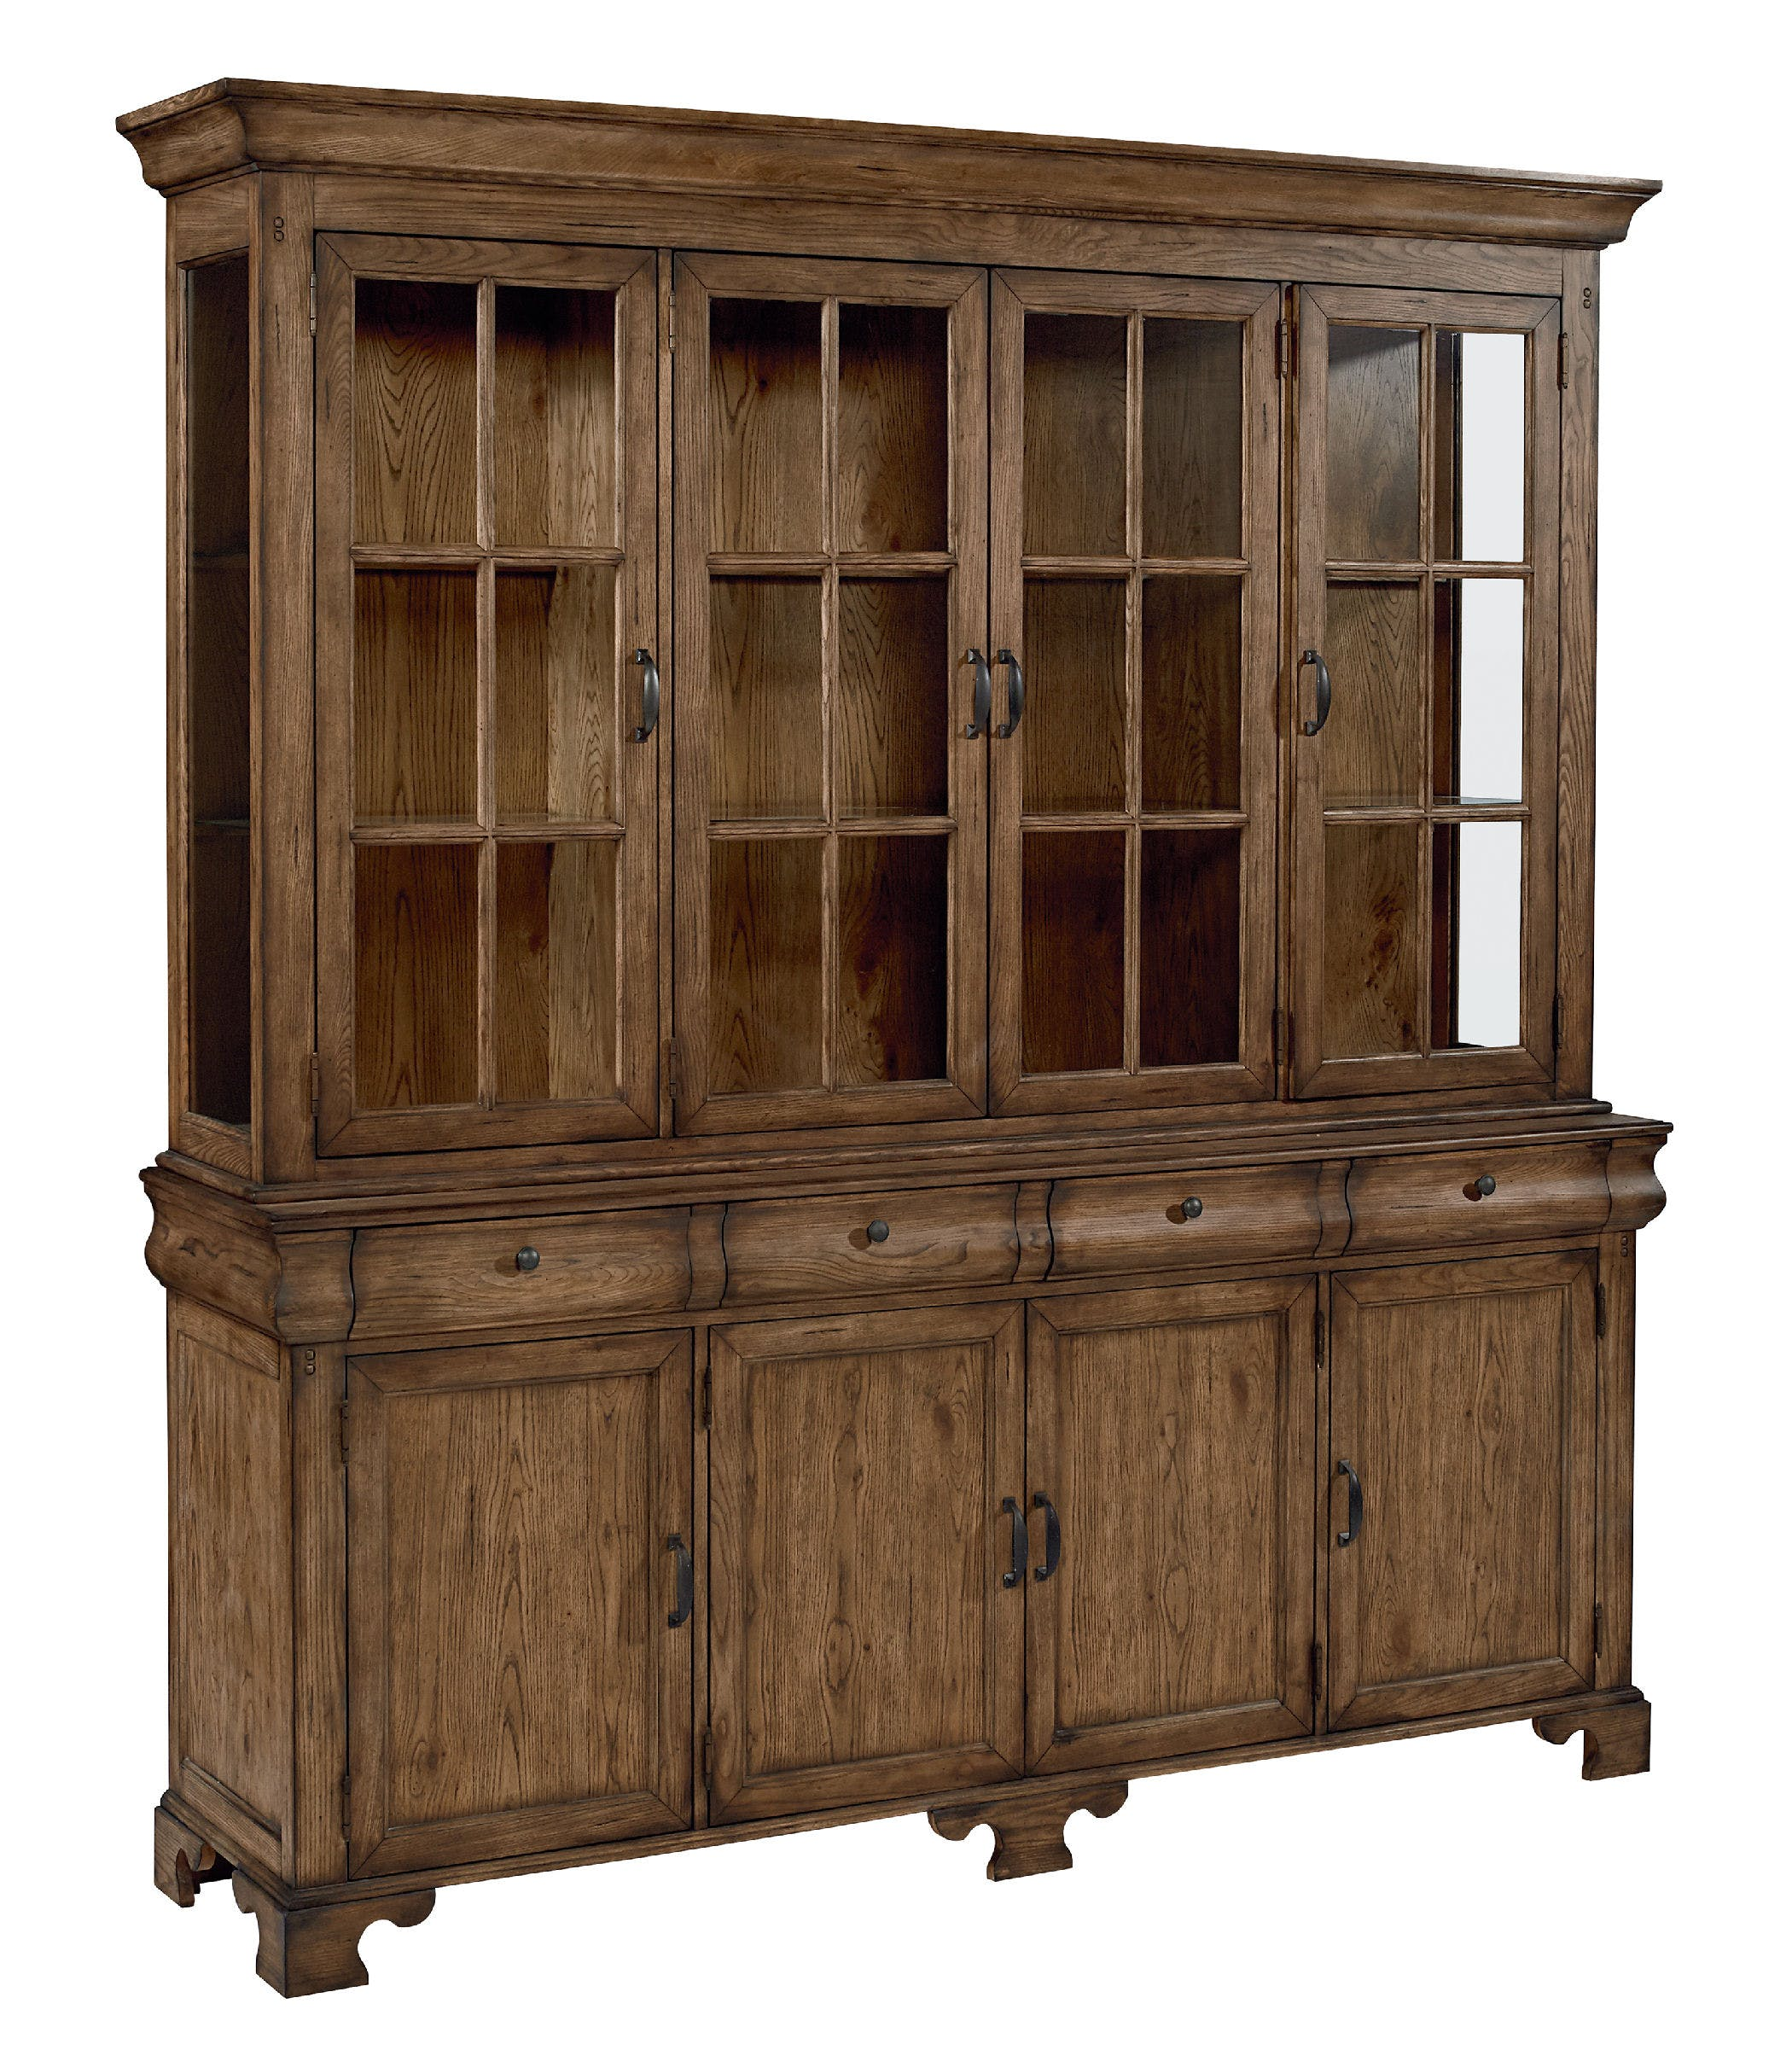 Showcase Buffet & Hutch | Magnolia Home | Star Furniture of Texas